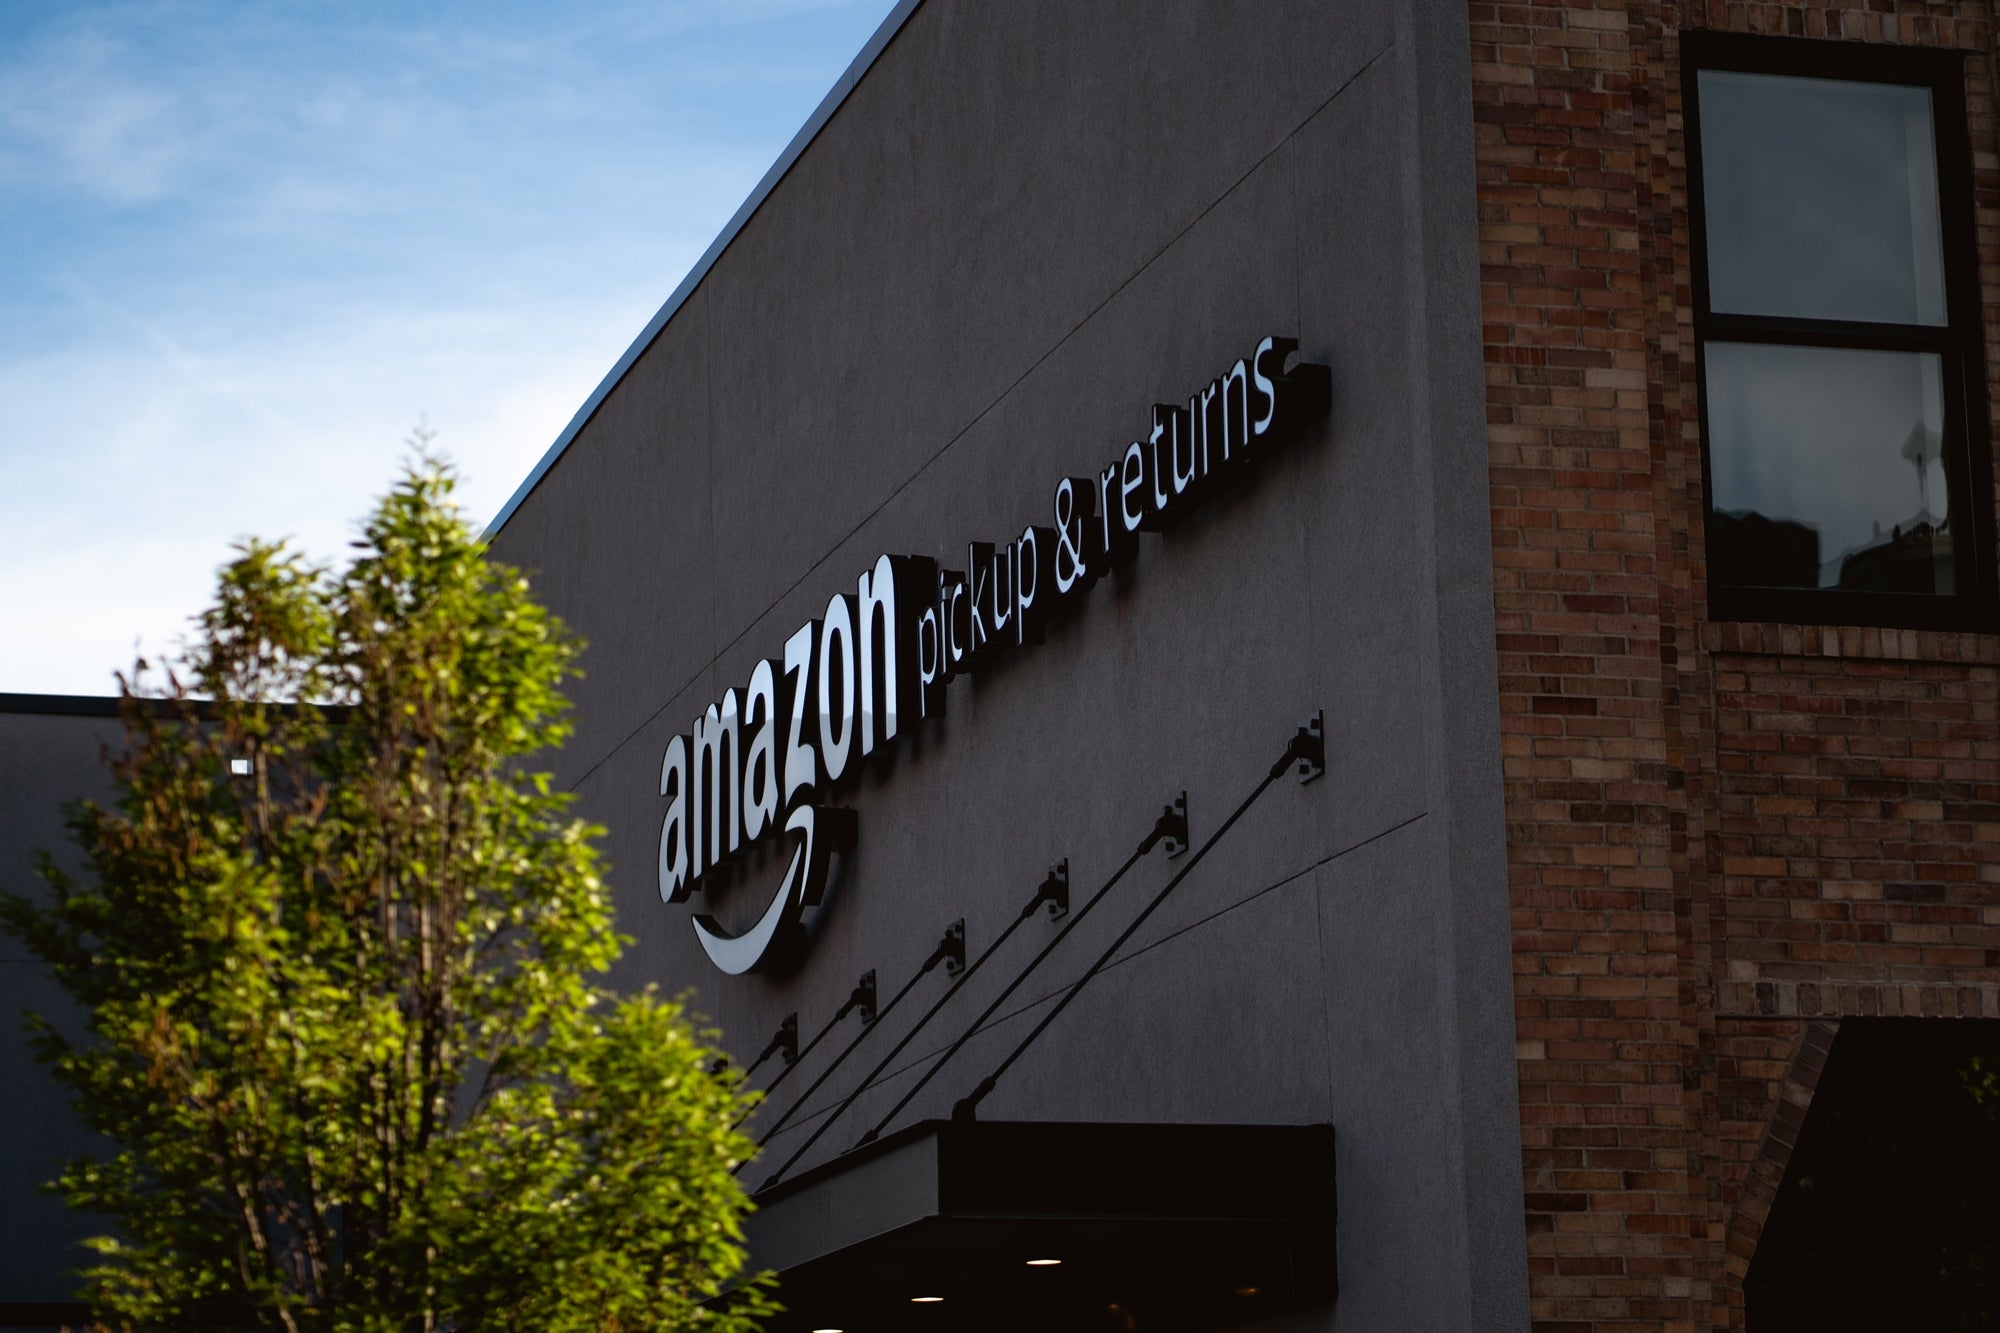 Jeff Bezos' Amazon could end up bankrupt for these reasons, according to specialist